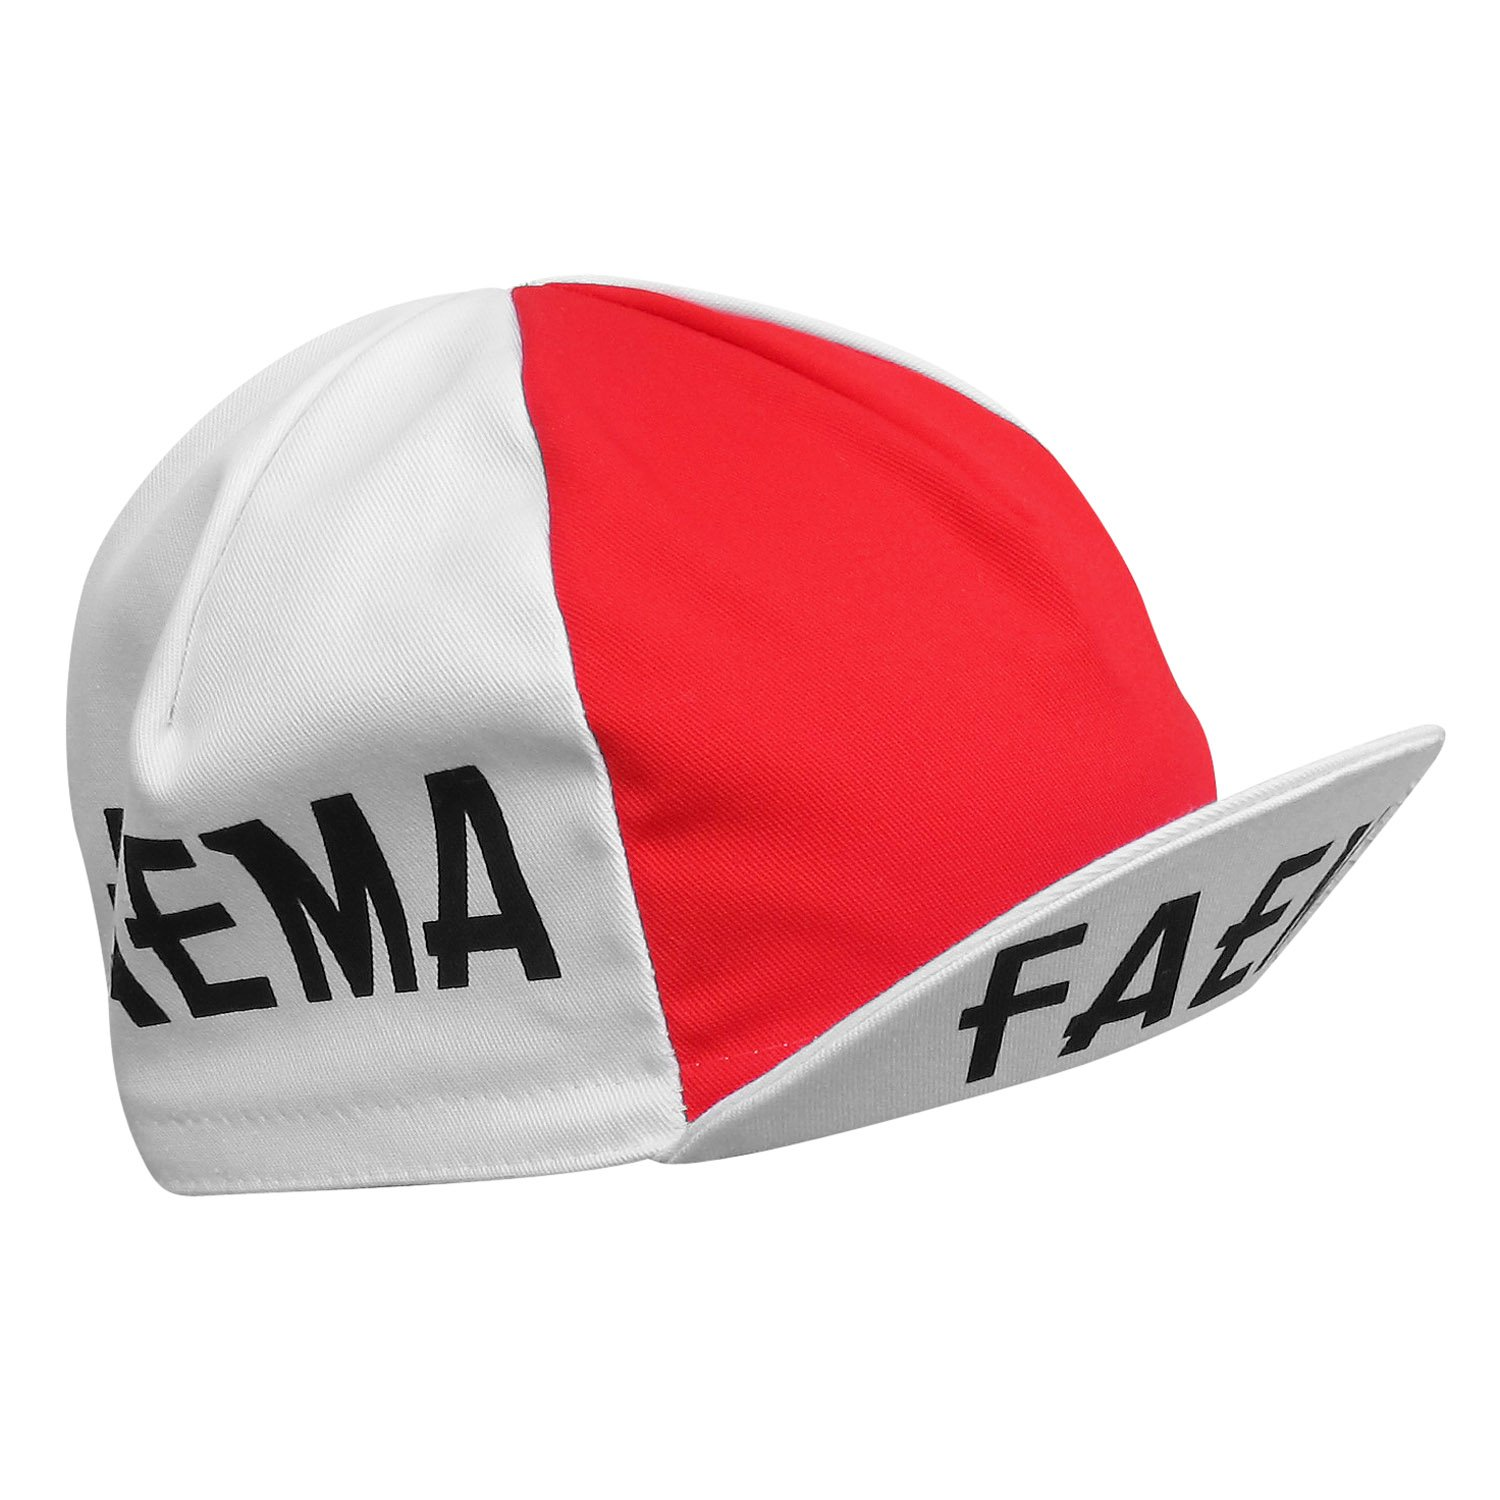 Faema Eddy Merckx Cycling Cap